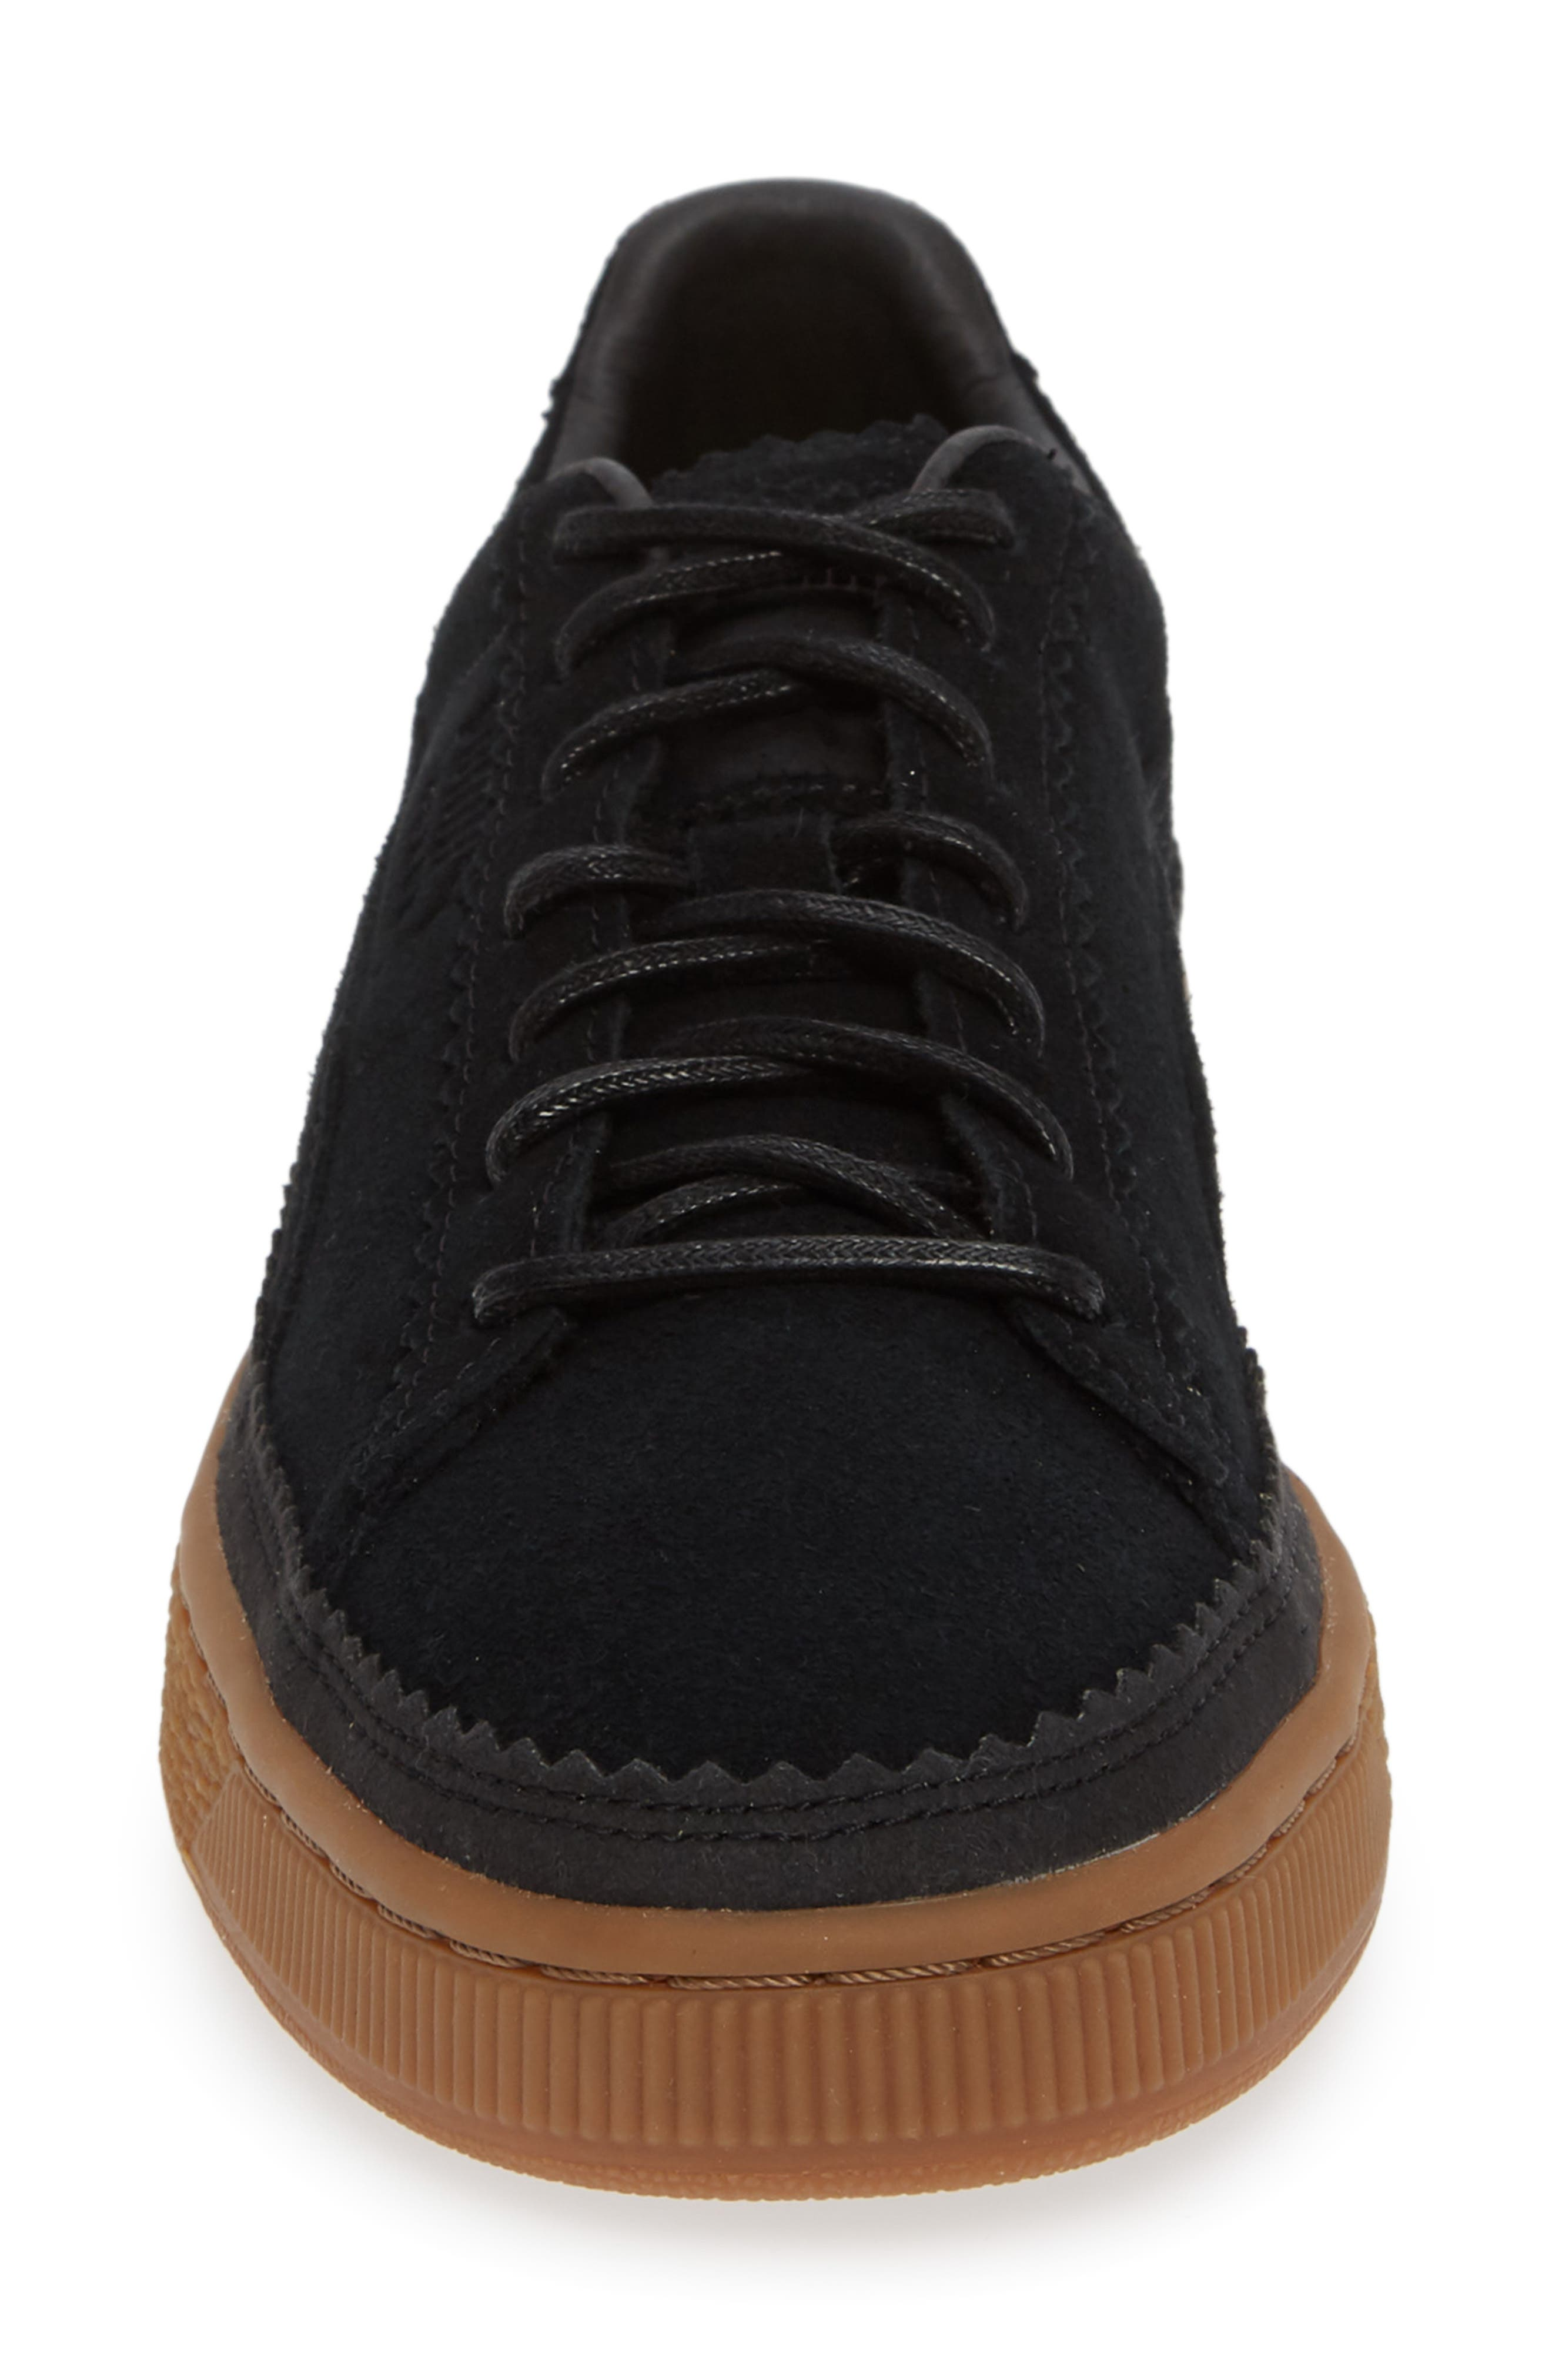 Suede Sneaker,                             Alternate thumbnail 4, color,                             BLACK/ BLACK